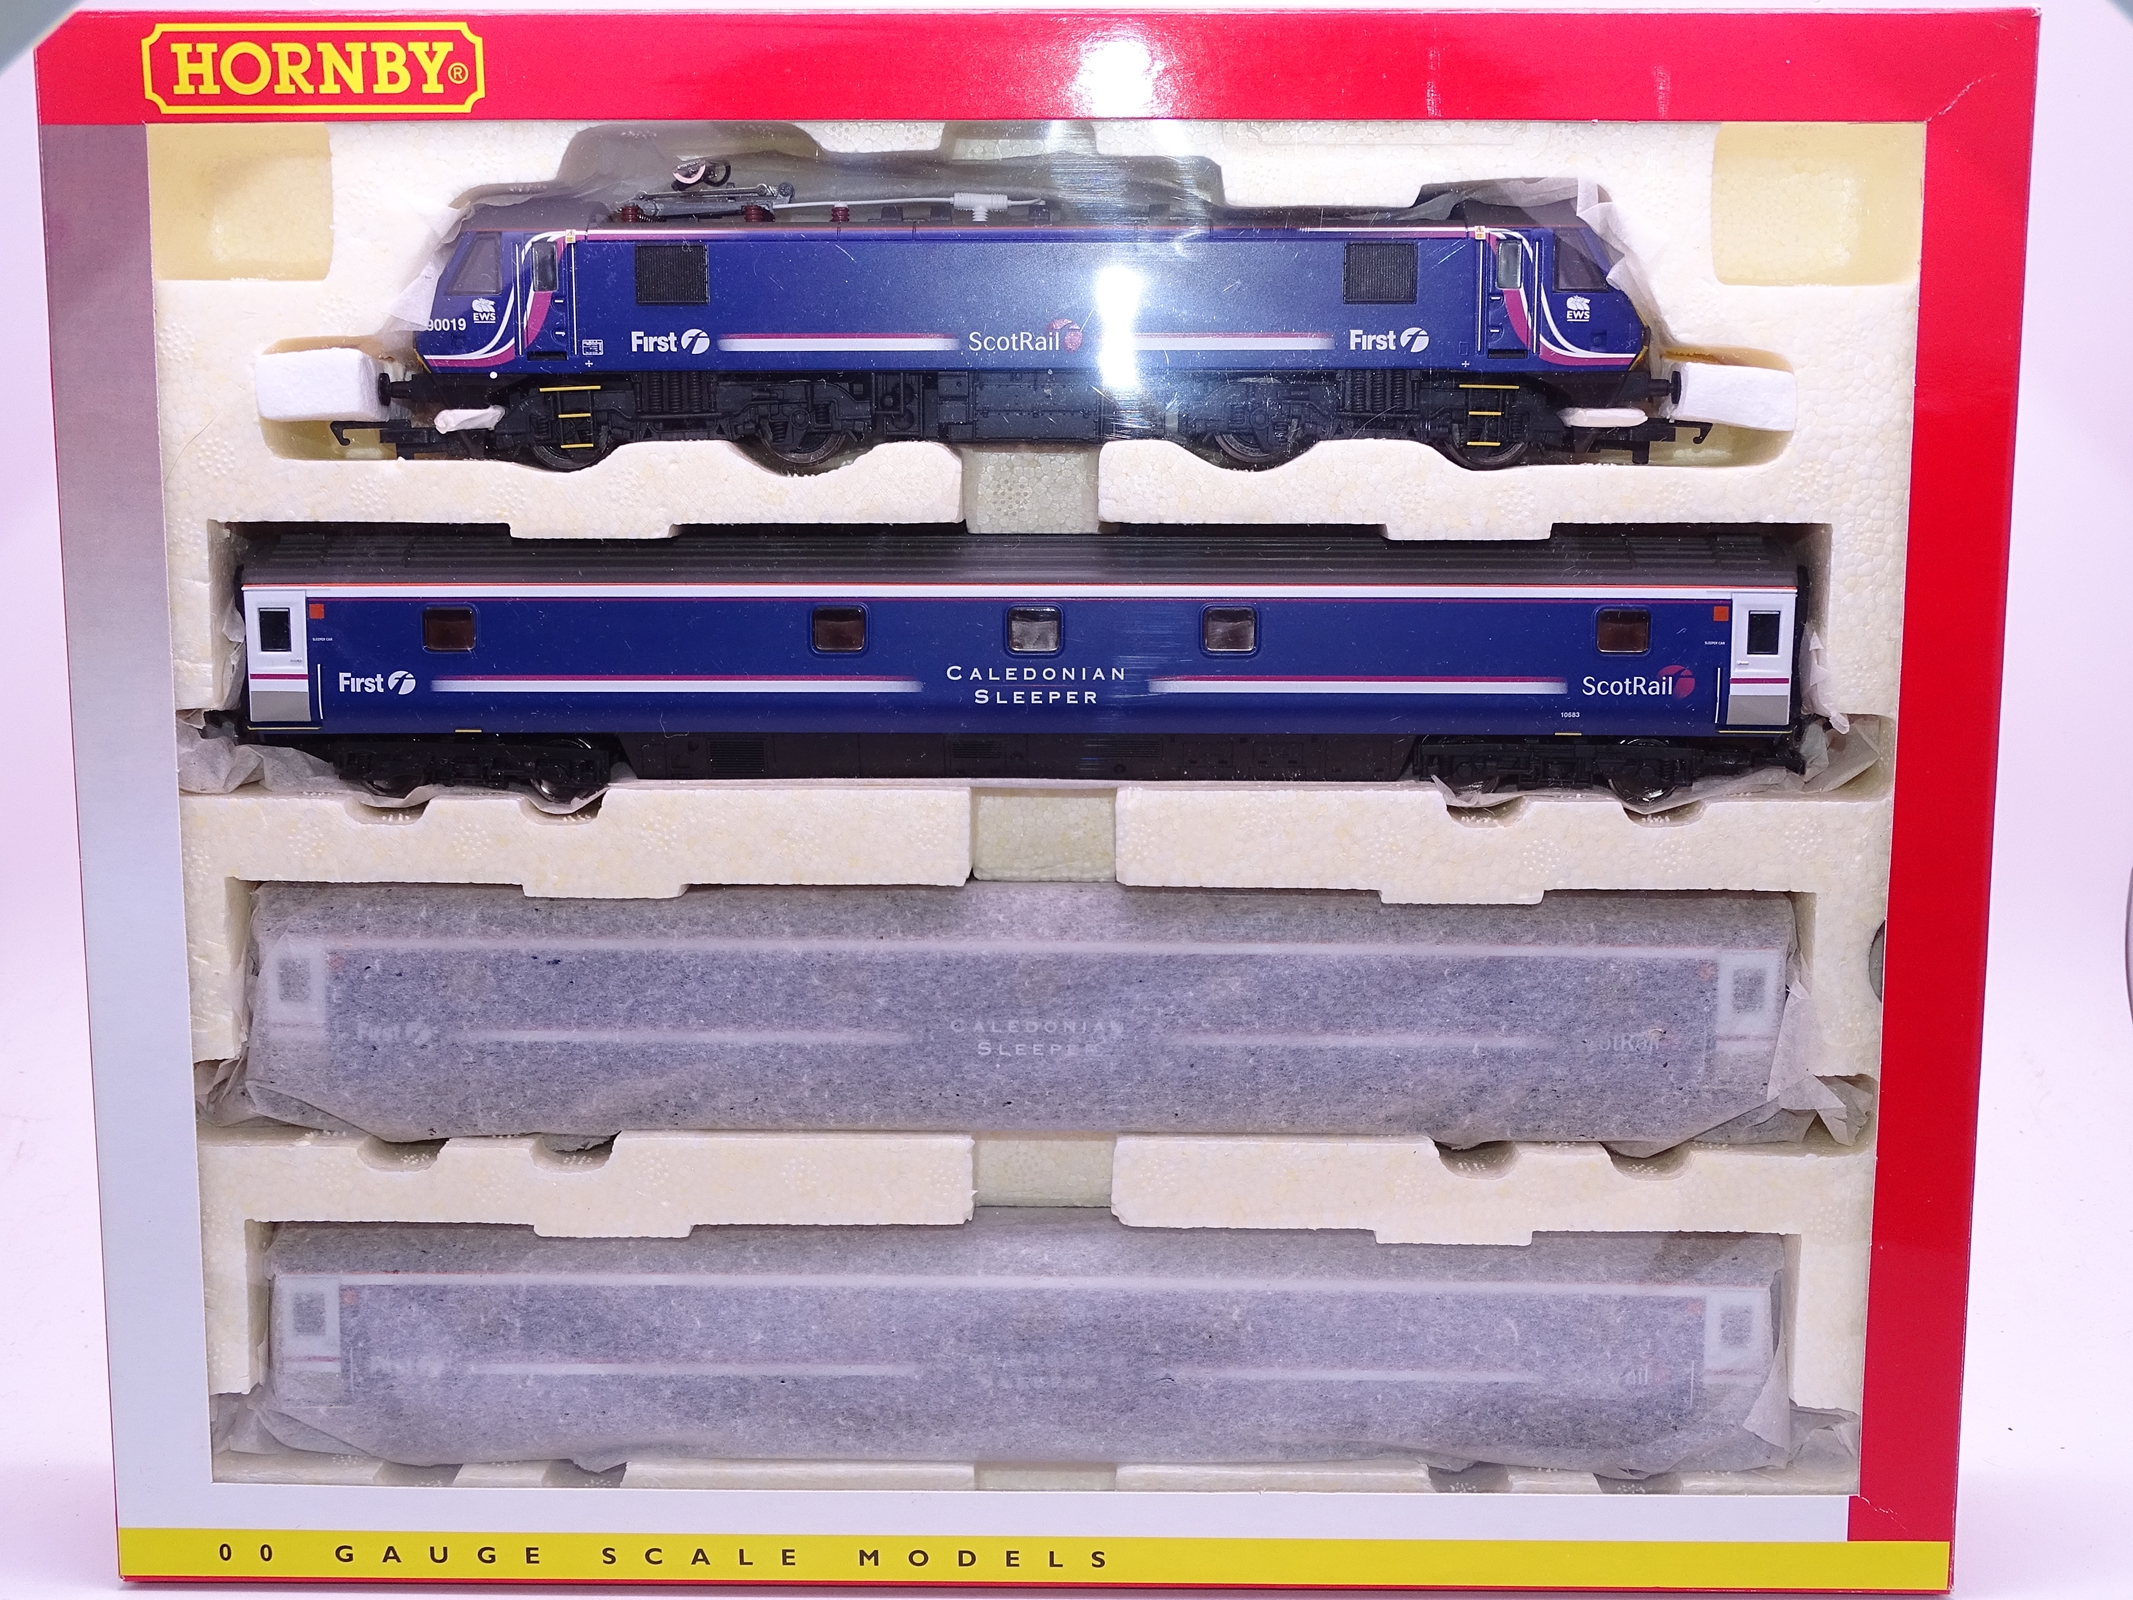 Lot 35 - OO Gauge -A Hornby R2663A 'Caledonian Sleeper' train pack including electric loco and 3 coaches - E,